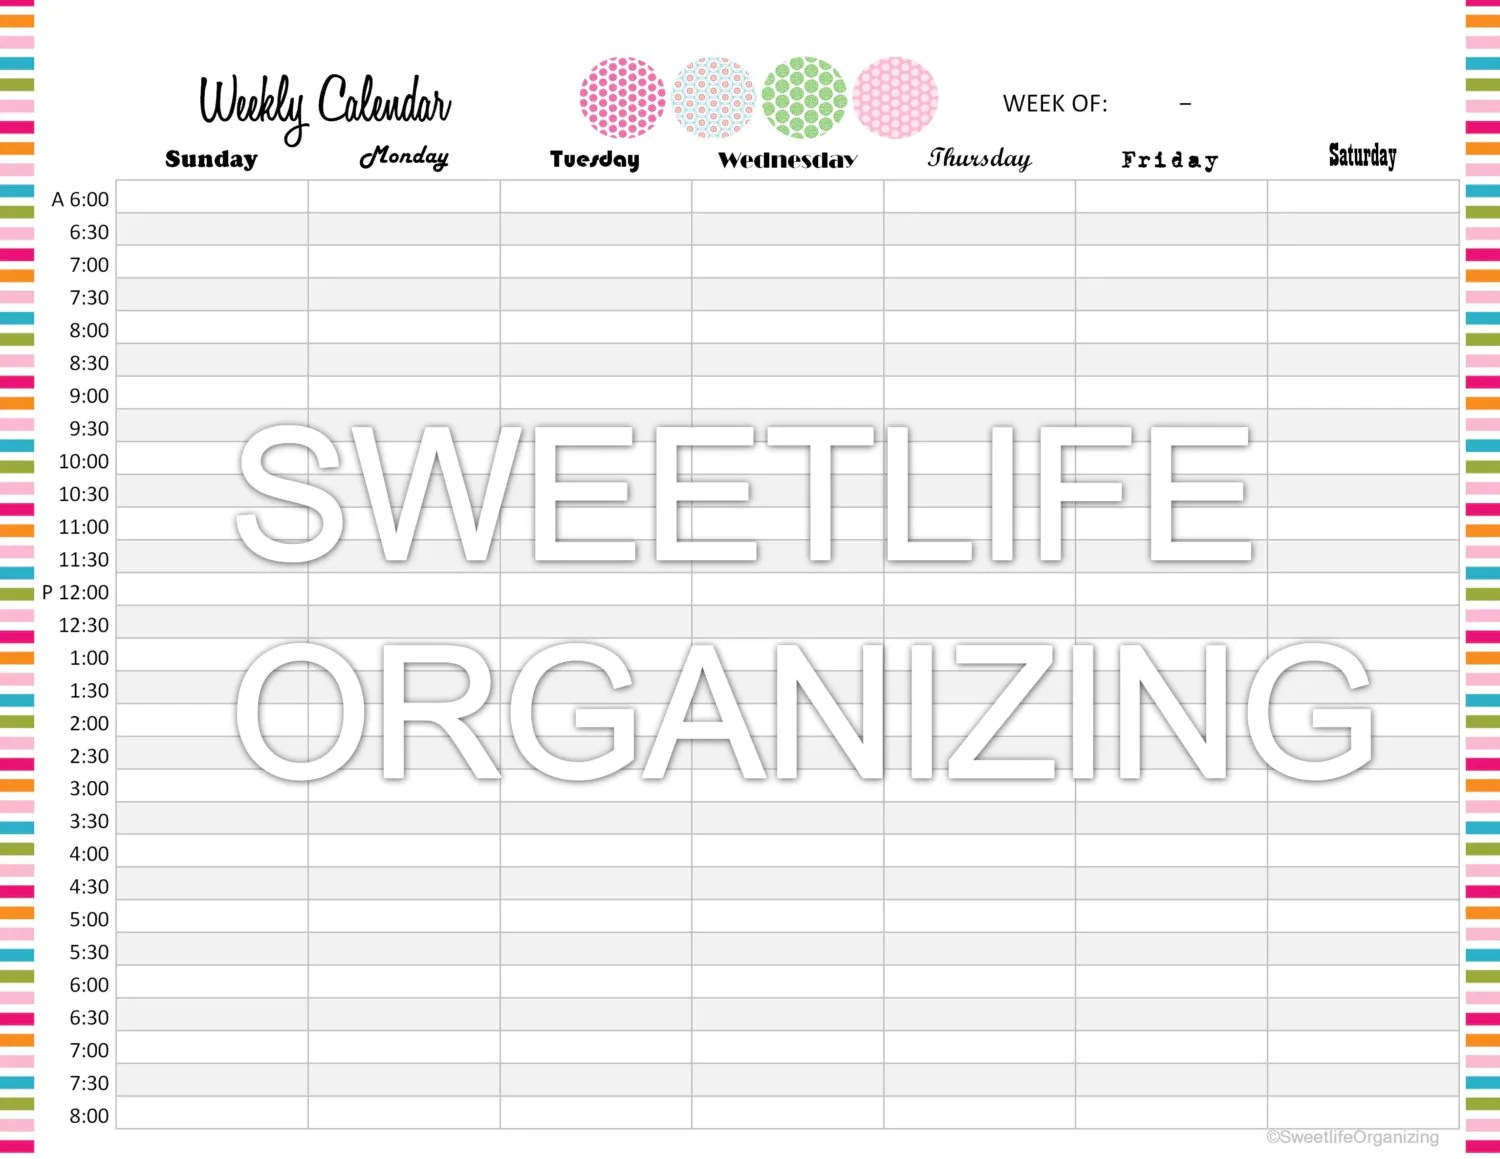 Weekly Appointment Calendar Organizing By Sweetlifeorganizing